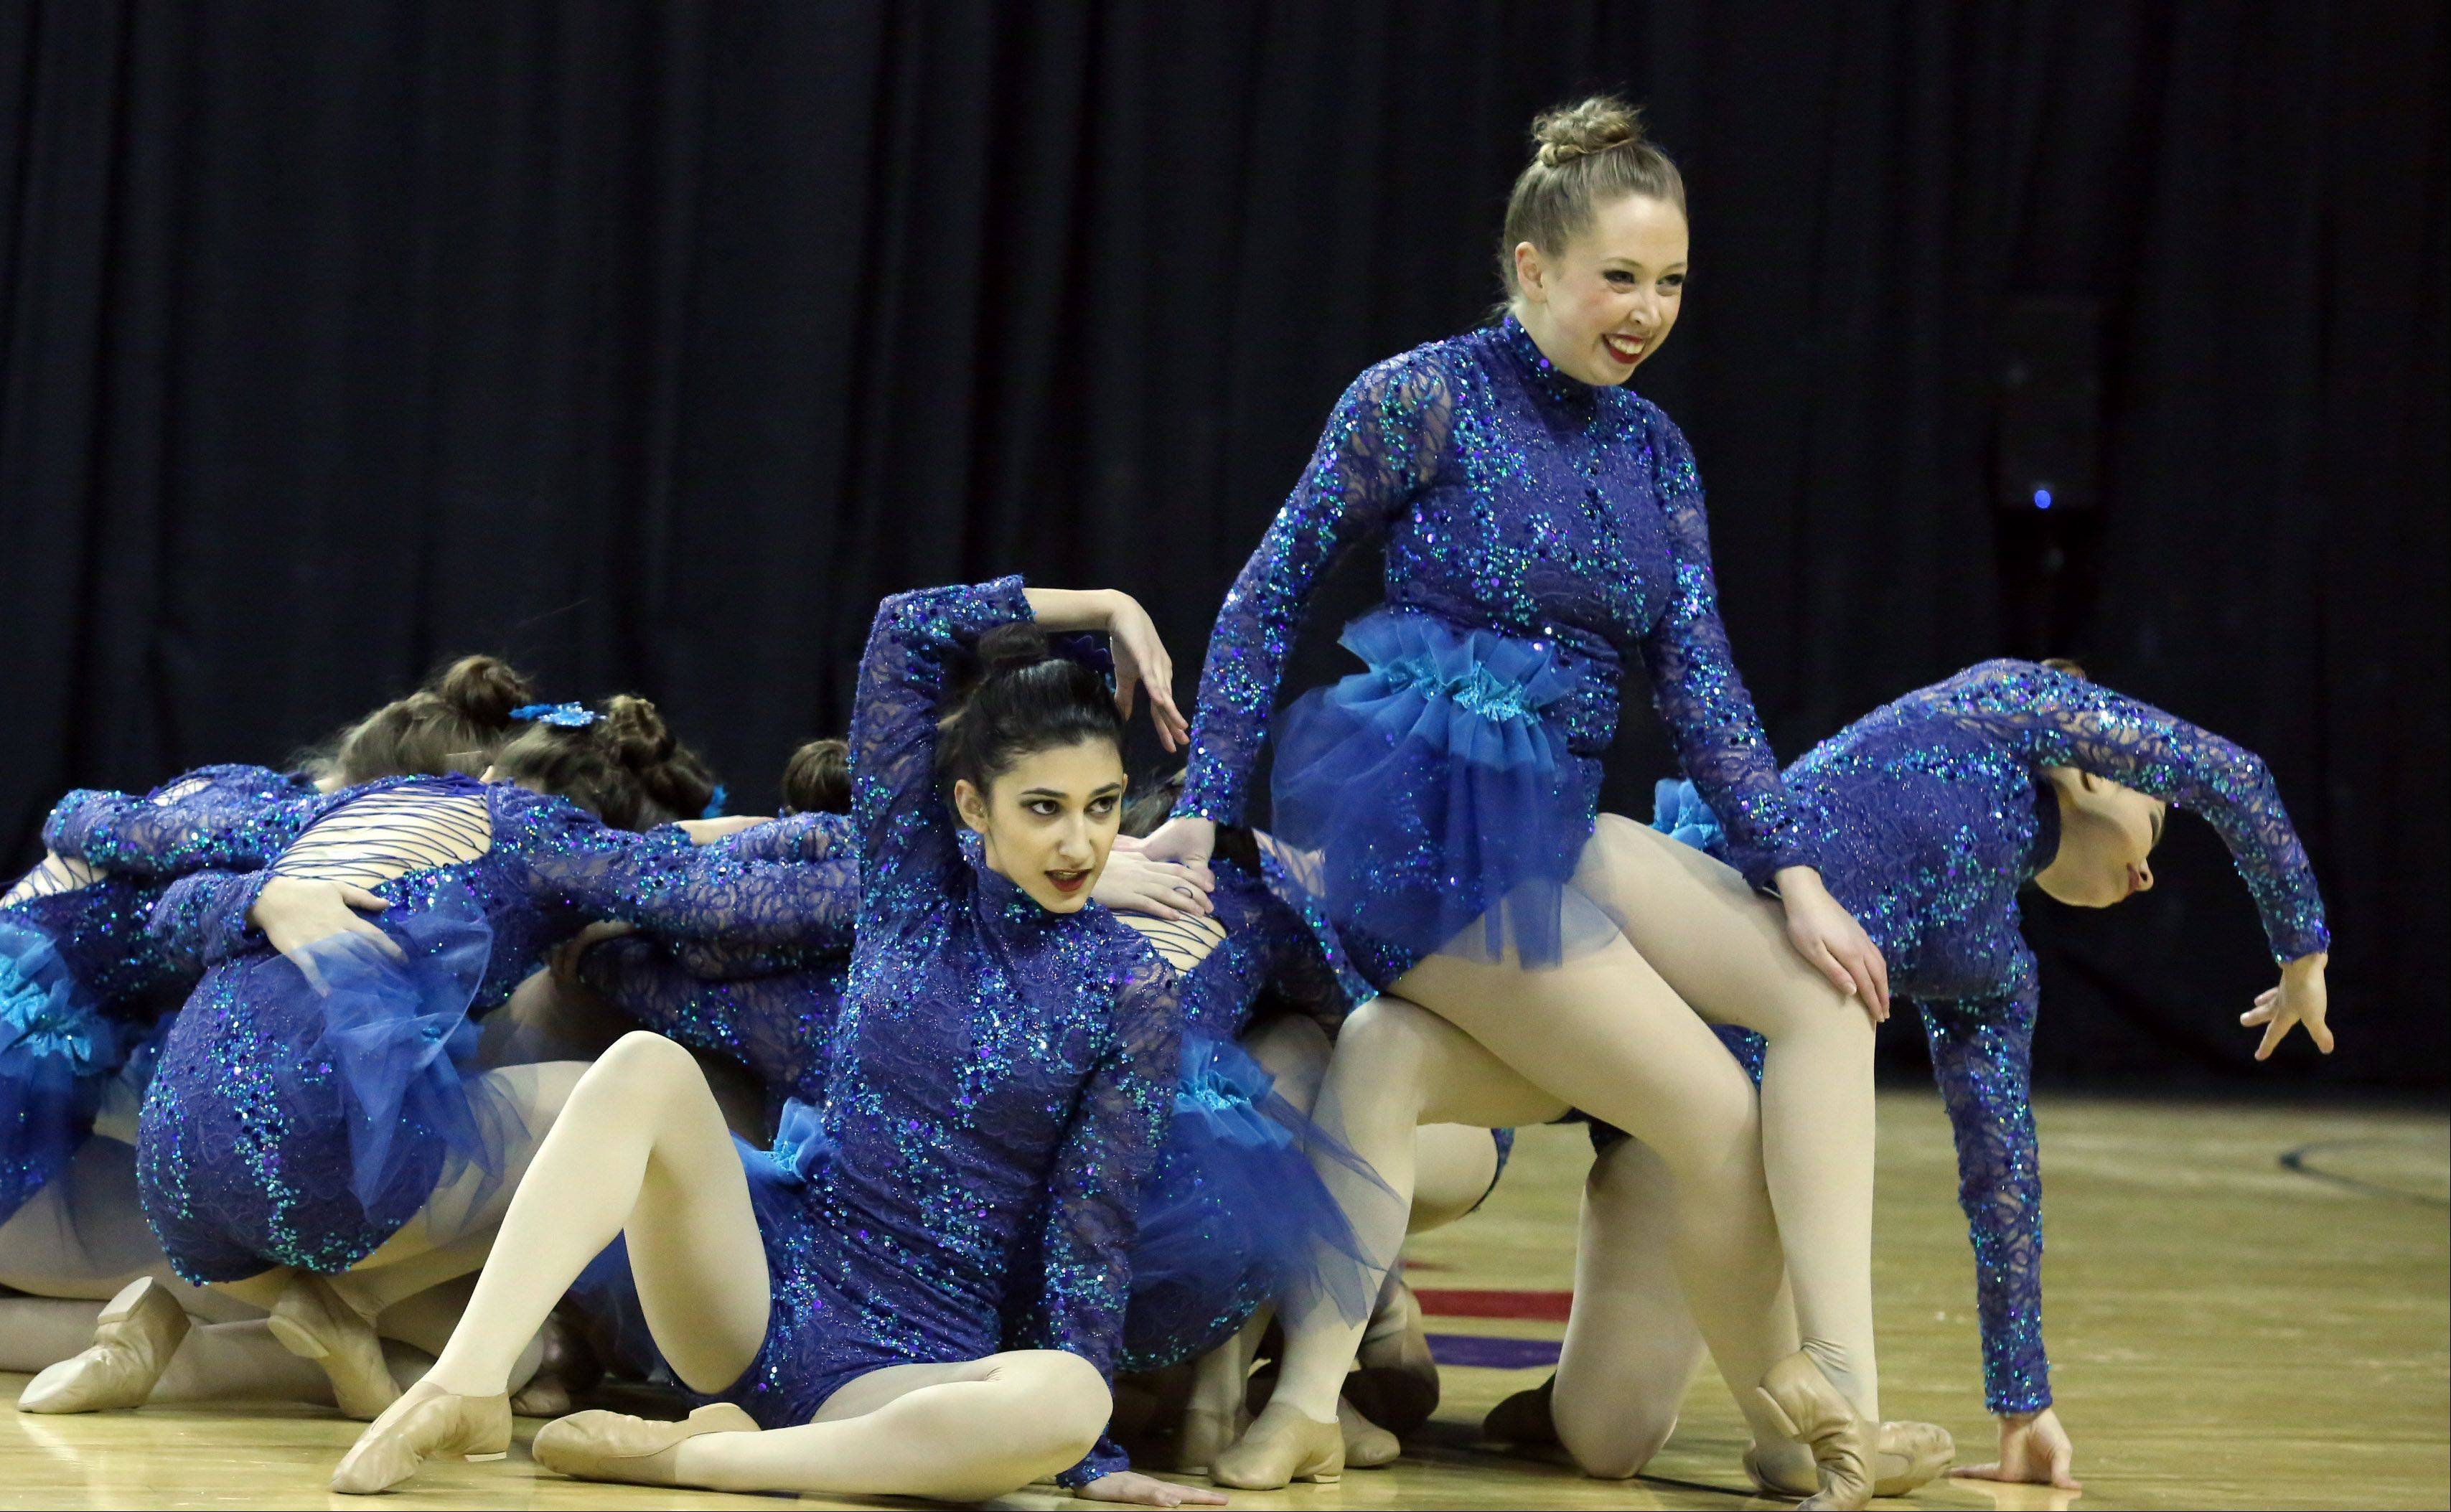 Aurora Central High School dance team competes in the IHSA Winter Meltdown Cheerleading and Dance Competition at Sears Centre Arena on Saturday in Hoffman Estates.